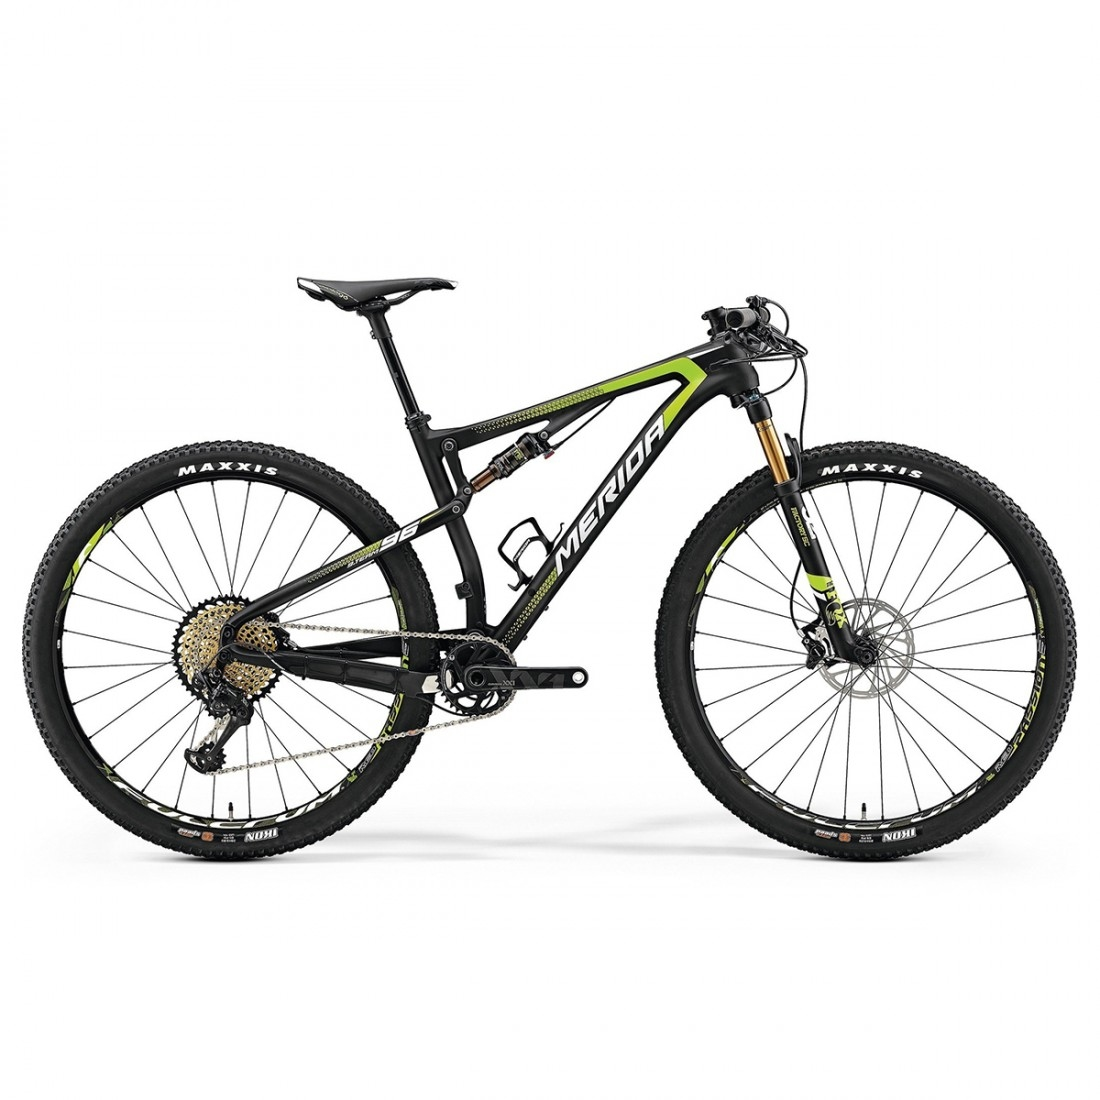 merida ninety six team 29 2018 carbon green white 1 M 0841511 xlarge